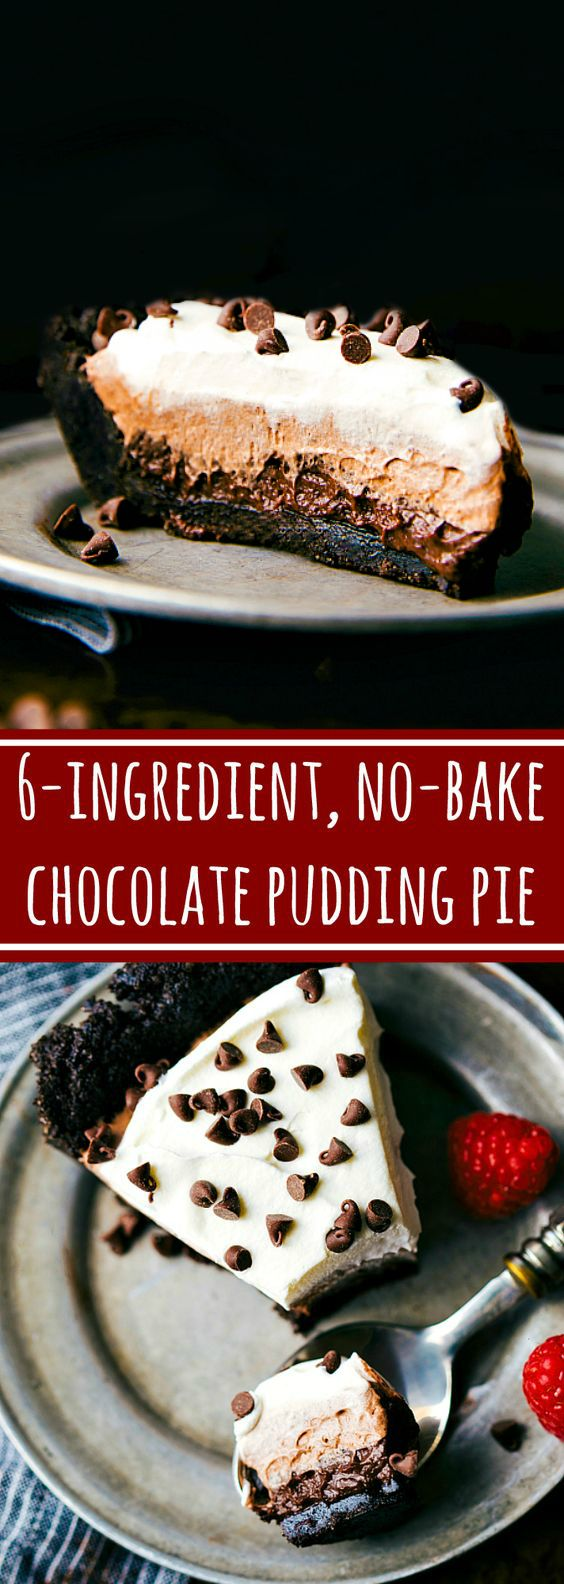 The BEST and easiest dessert! 6-ingredient NO BAKE Chocolate Pudding Pie. Impressive looking, little effort